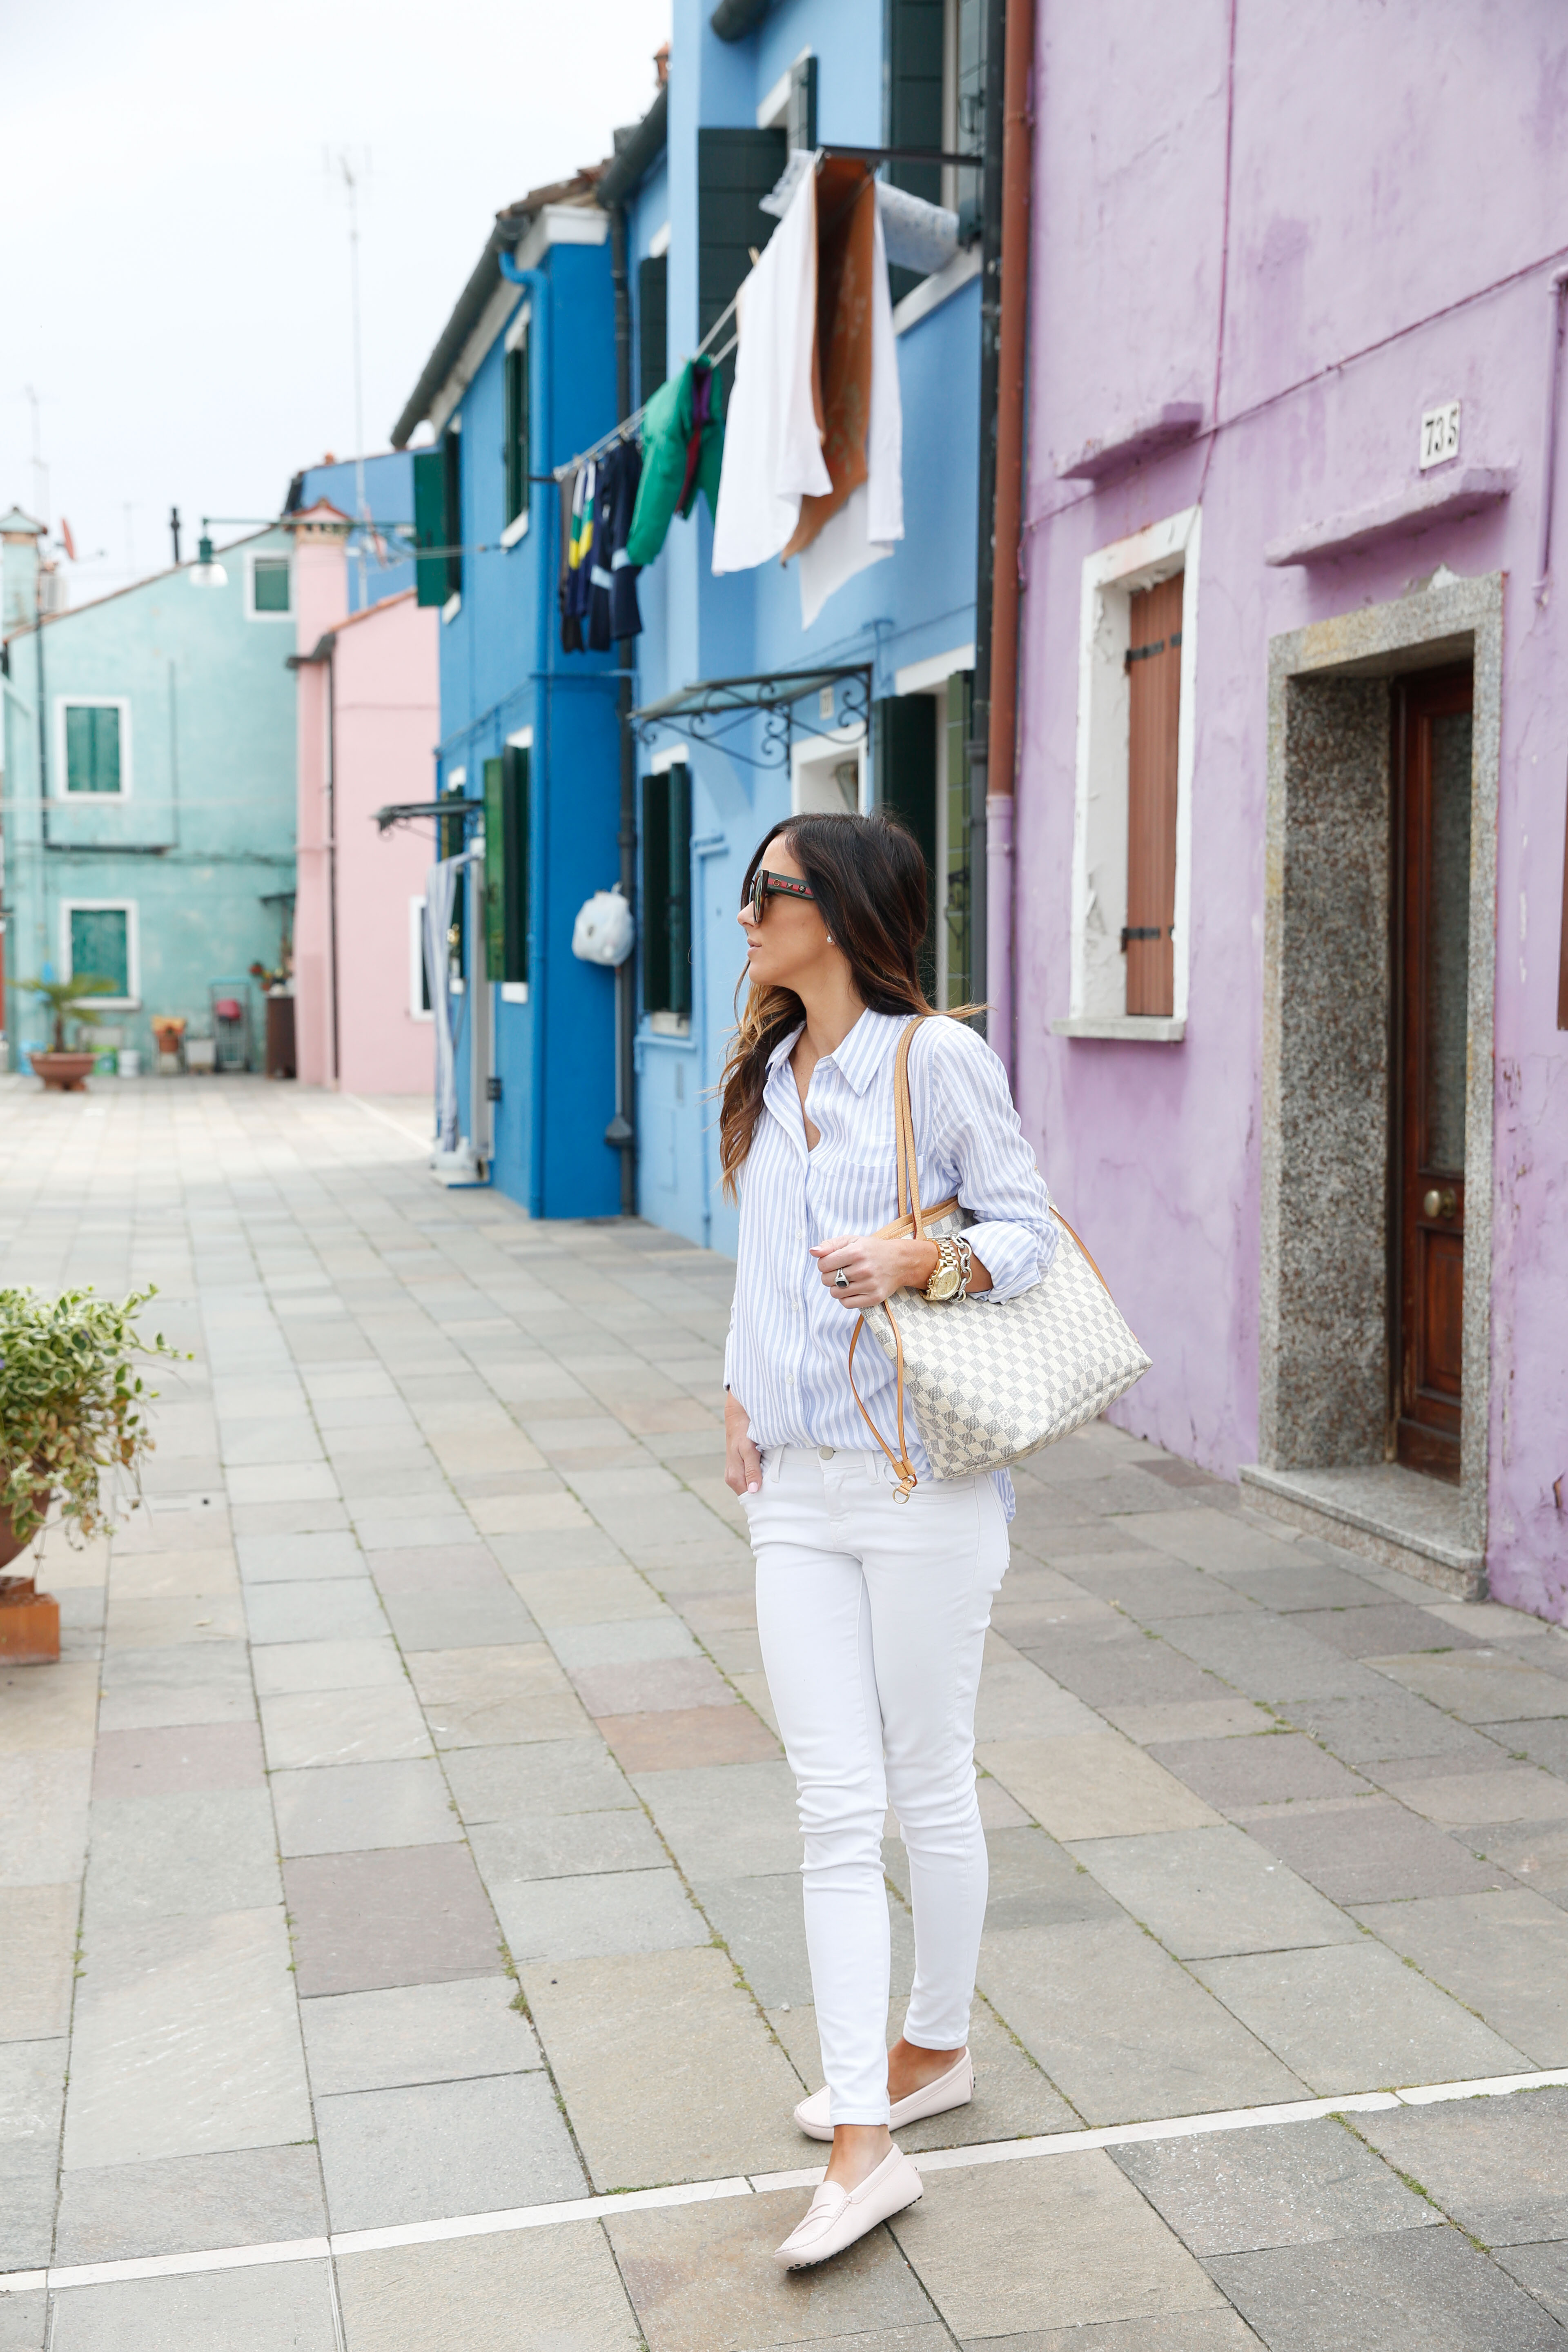 burano, italy, venice, sequins and things, alyson haley burano, alyson haley